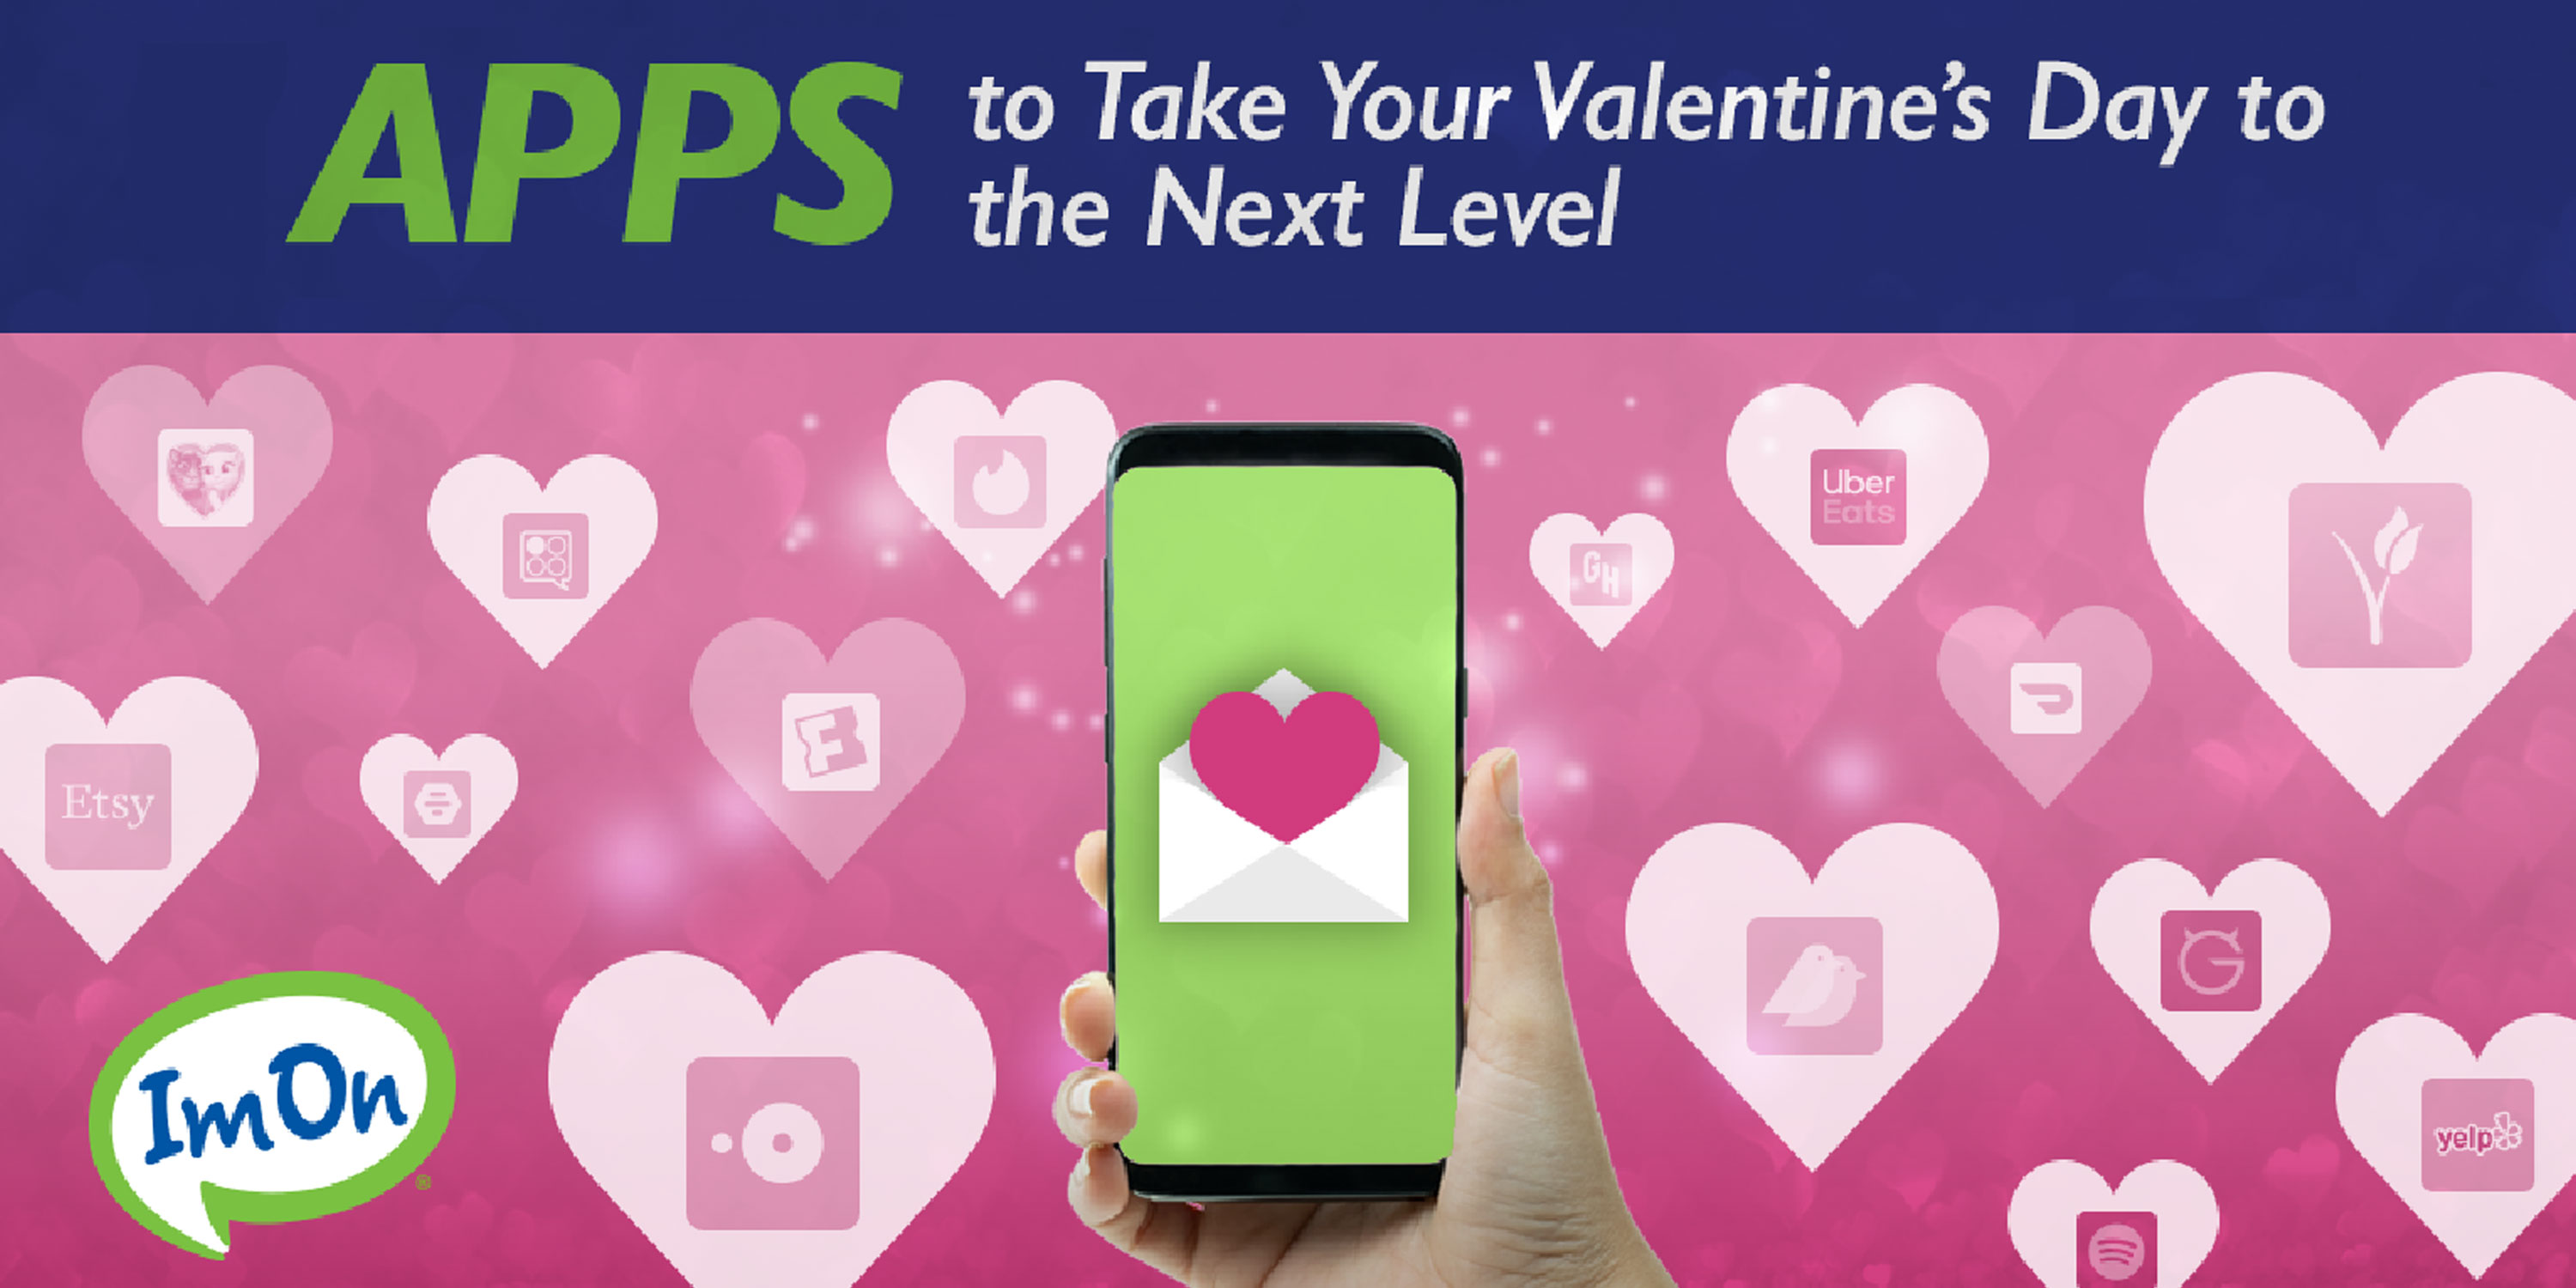 Hand holding smartphone surrounded by Apps for Valentine's Day